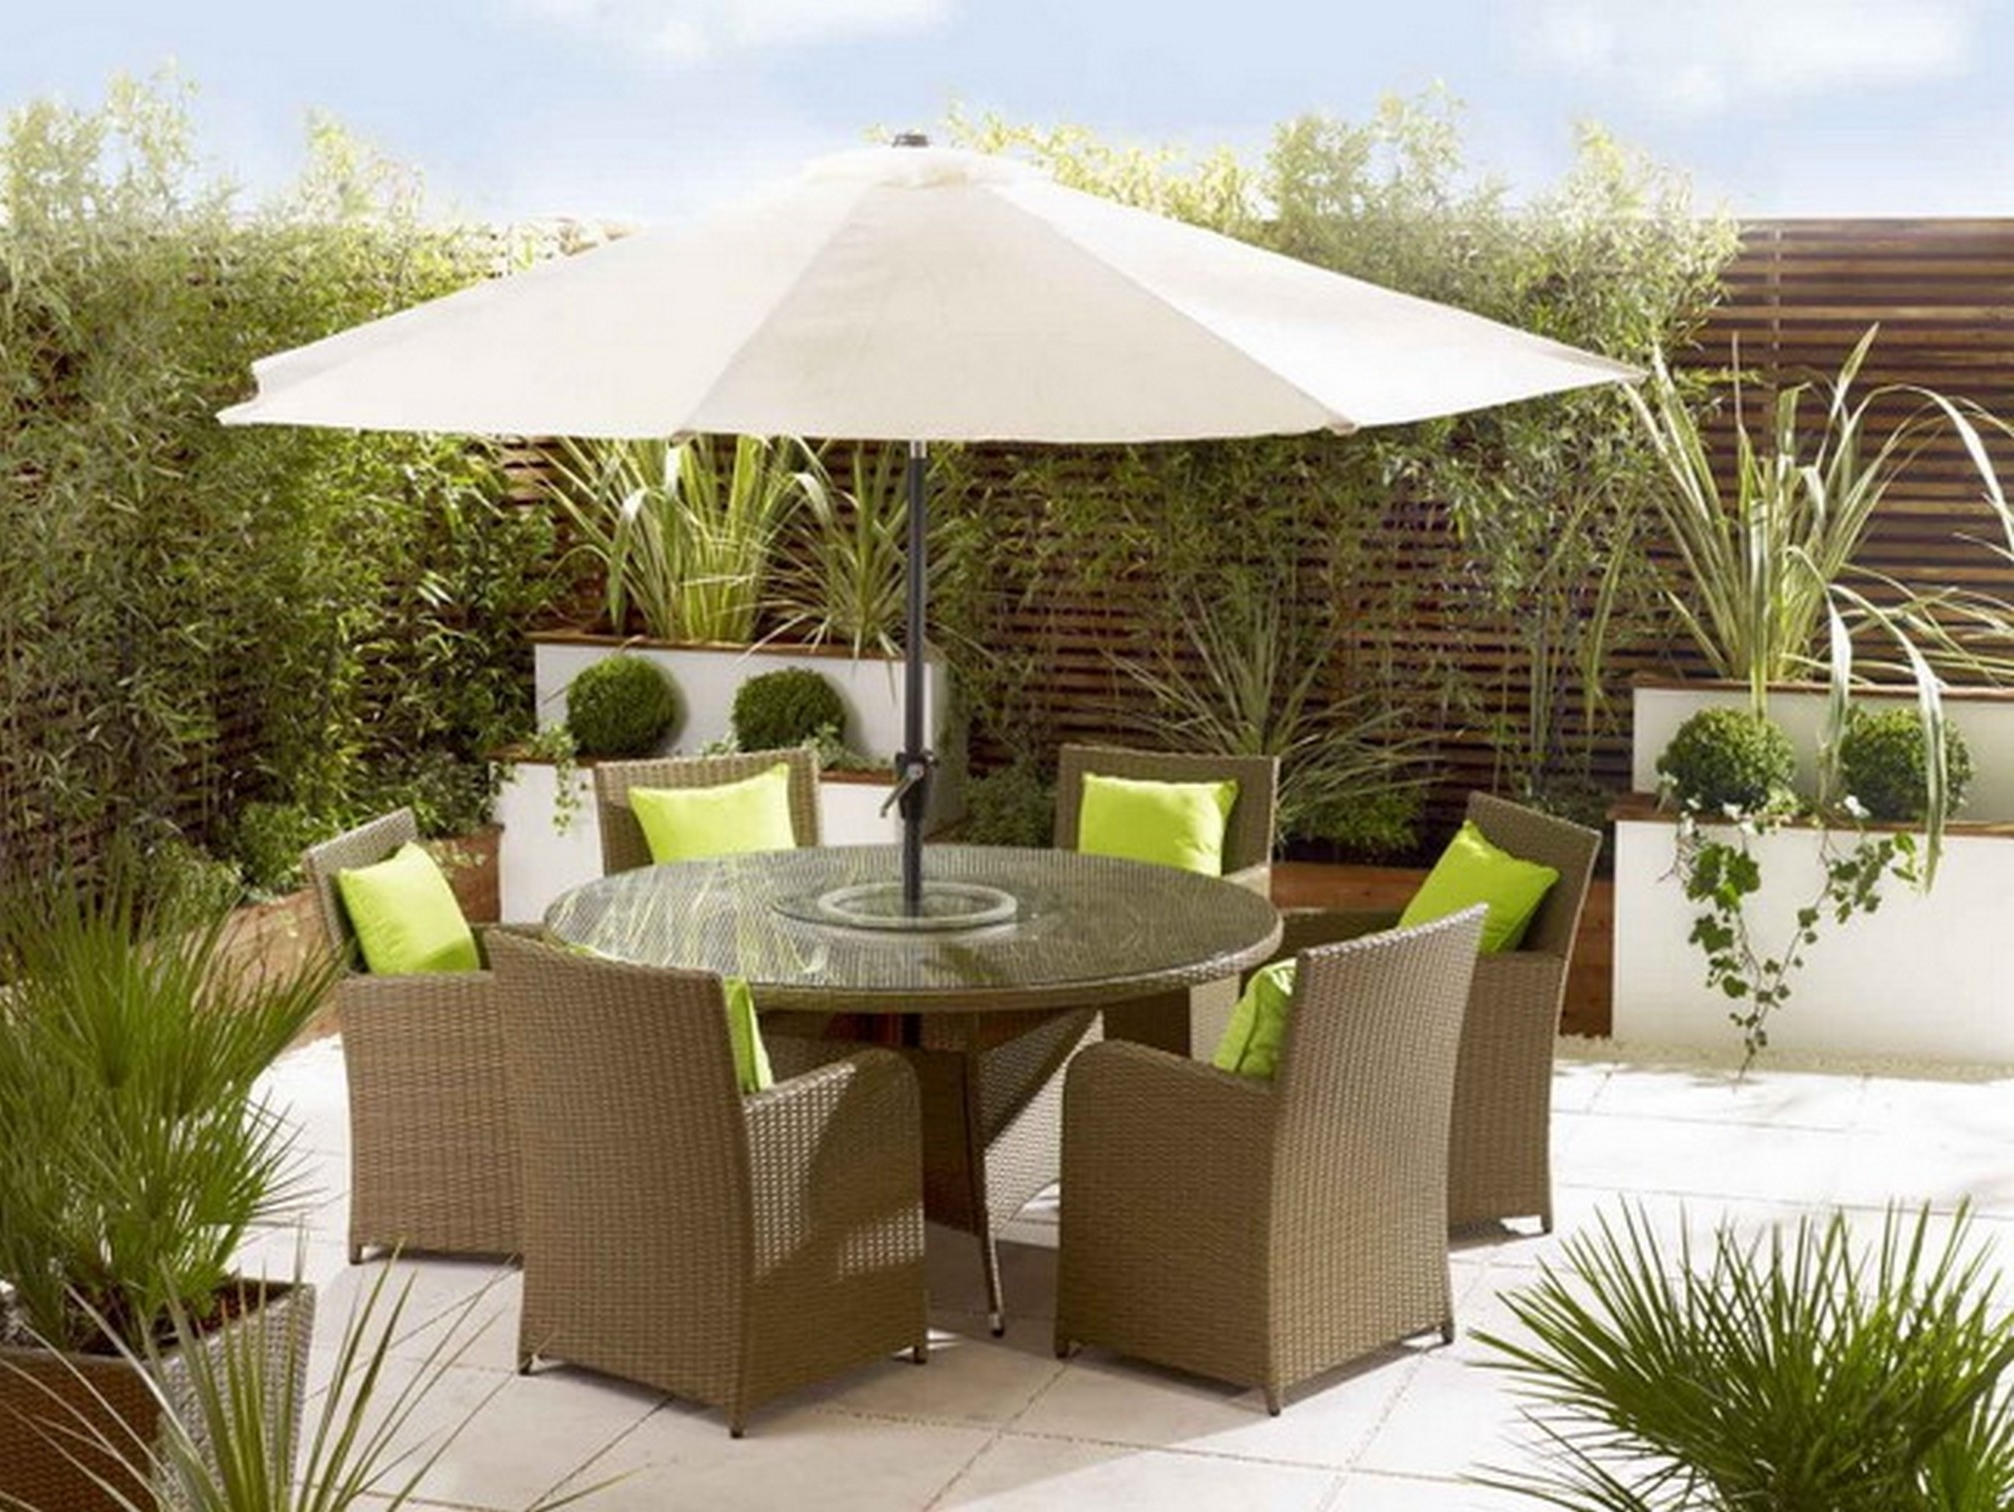 Well Known Patio Dining Umbrellas Within Patio Table Umbrella Cover — Mistikcamping Home Design : The Patio (View 8 of 20)